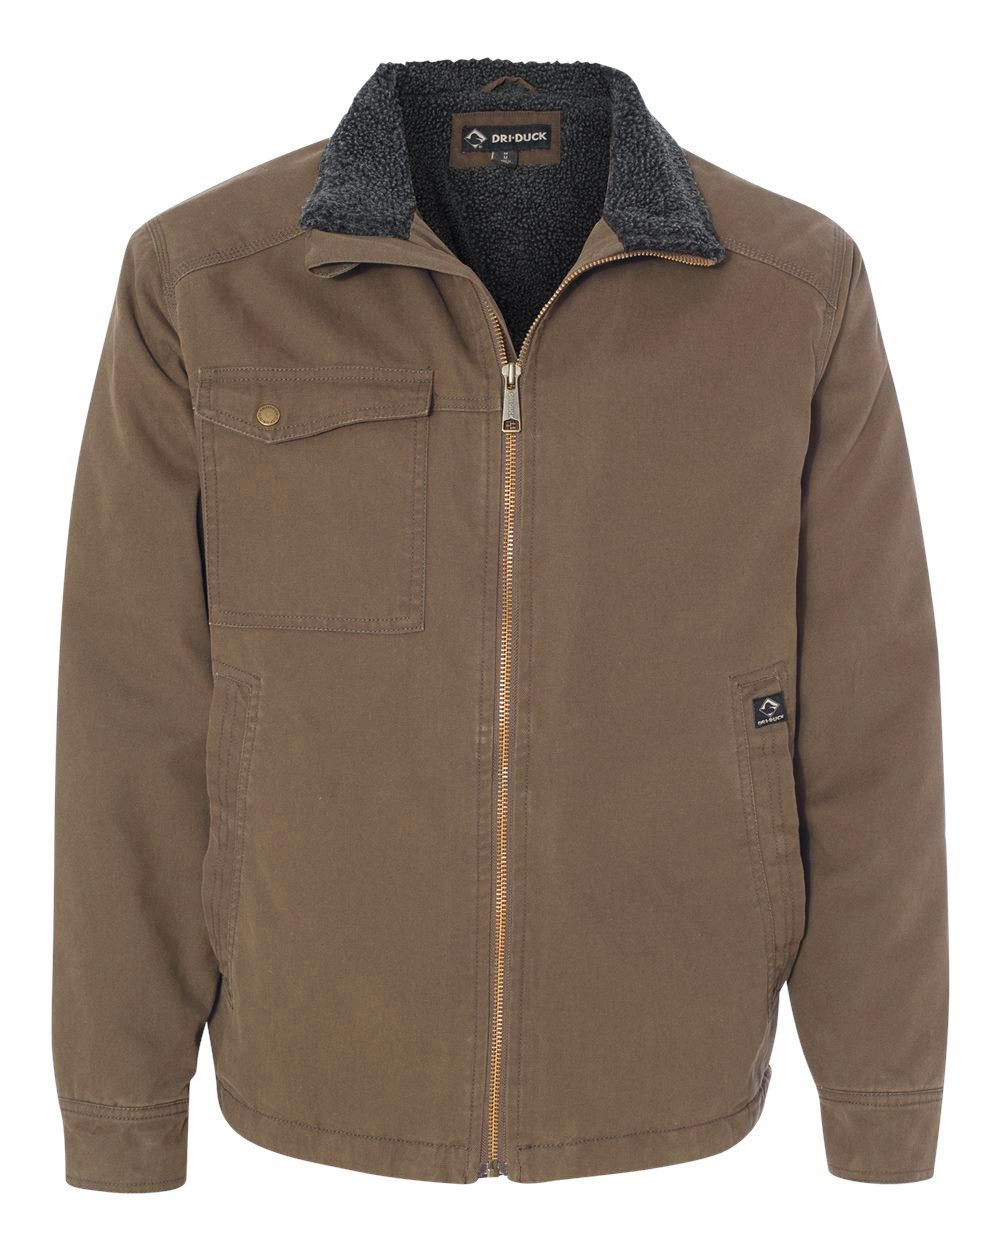 Dri Duck Mens Endeavor Jacket with Sherpa Lining